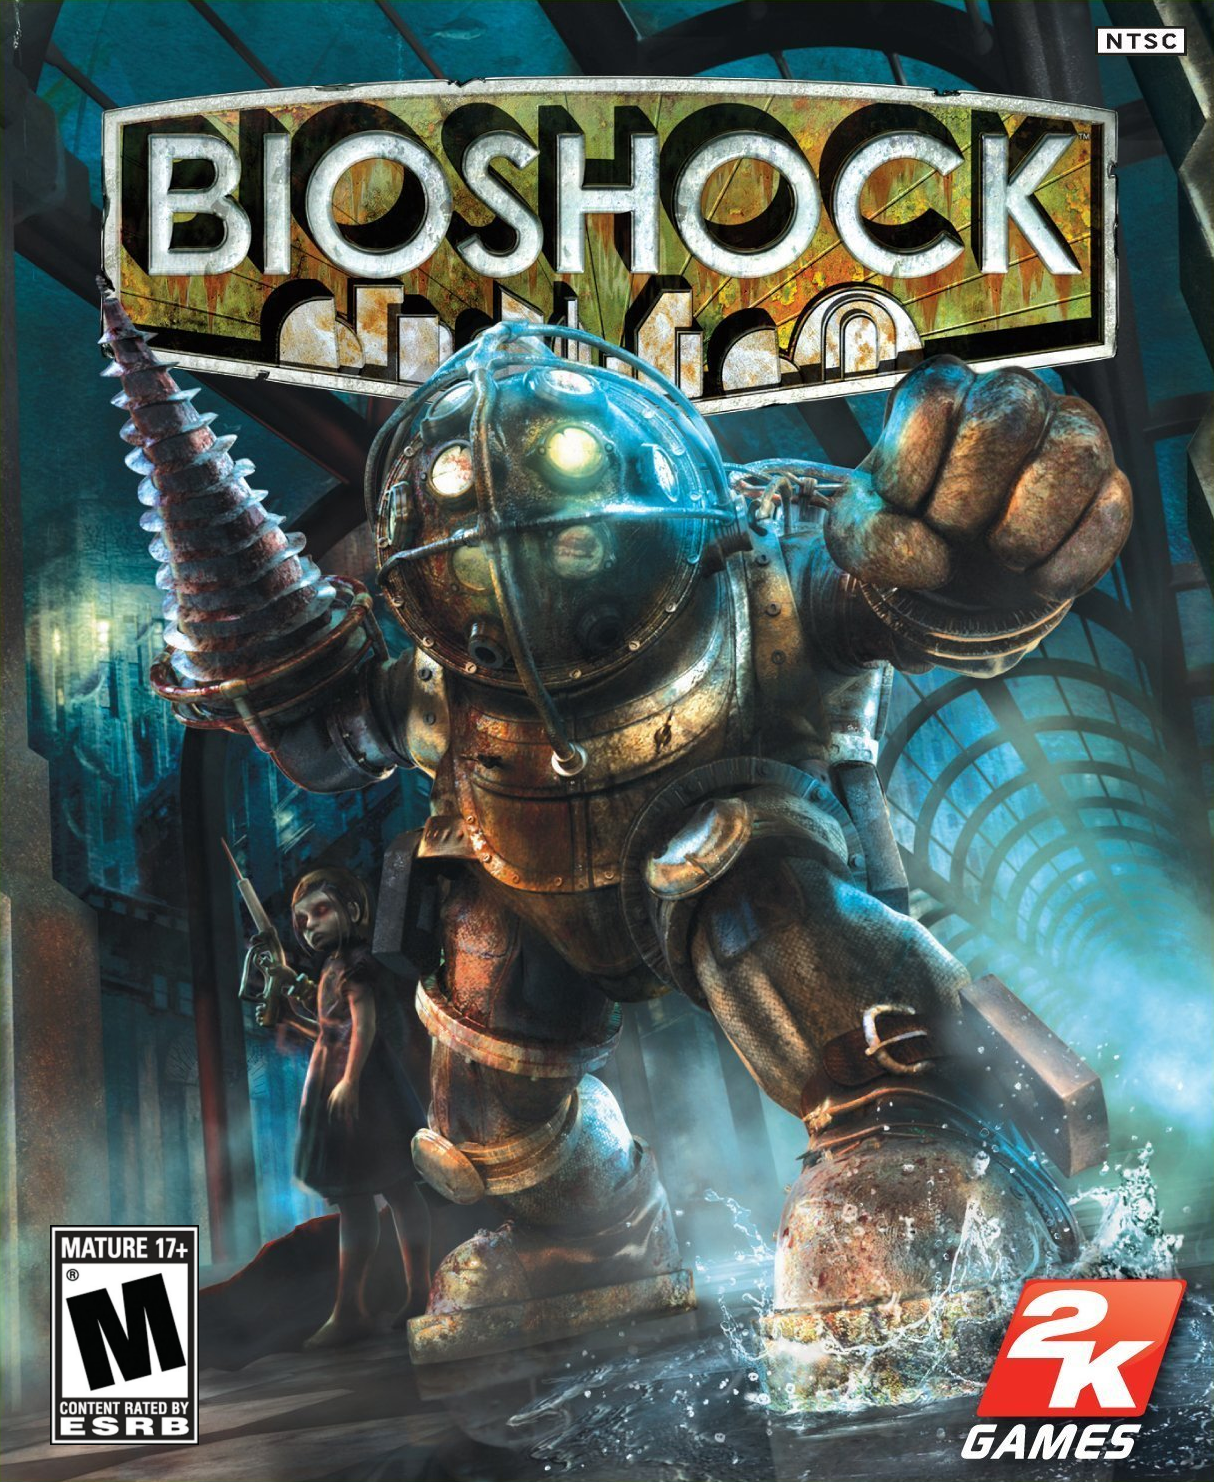 http://images2.wikia.nocookie.net/__cb20100425082951/bioshock/images/8/8e/BioShock_box.png